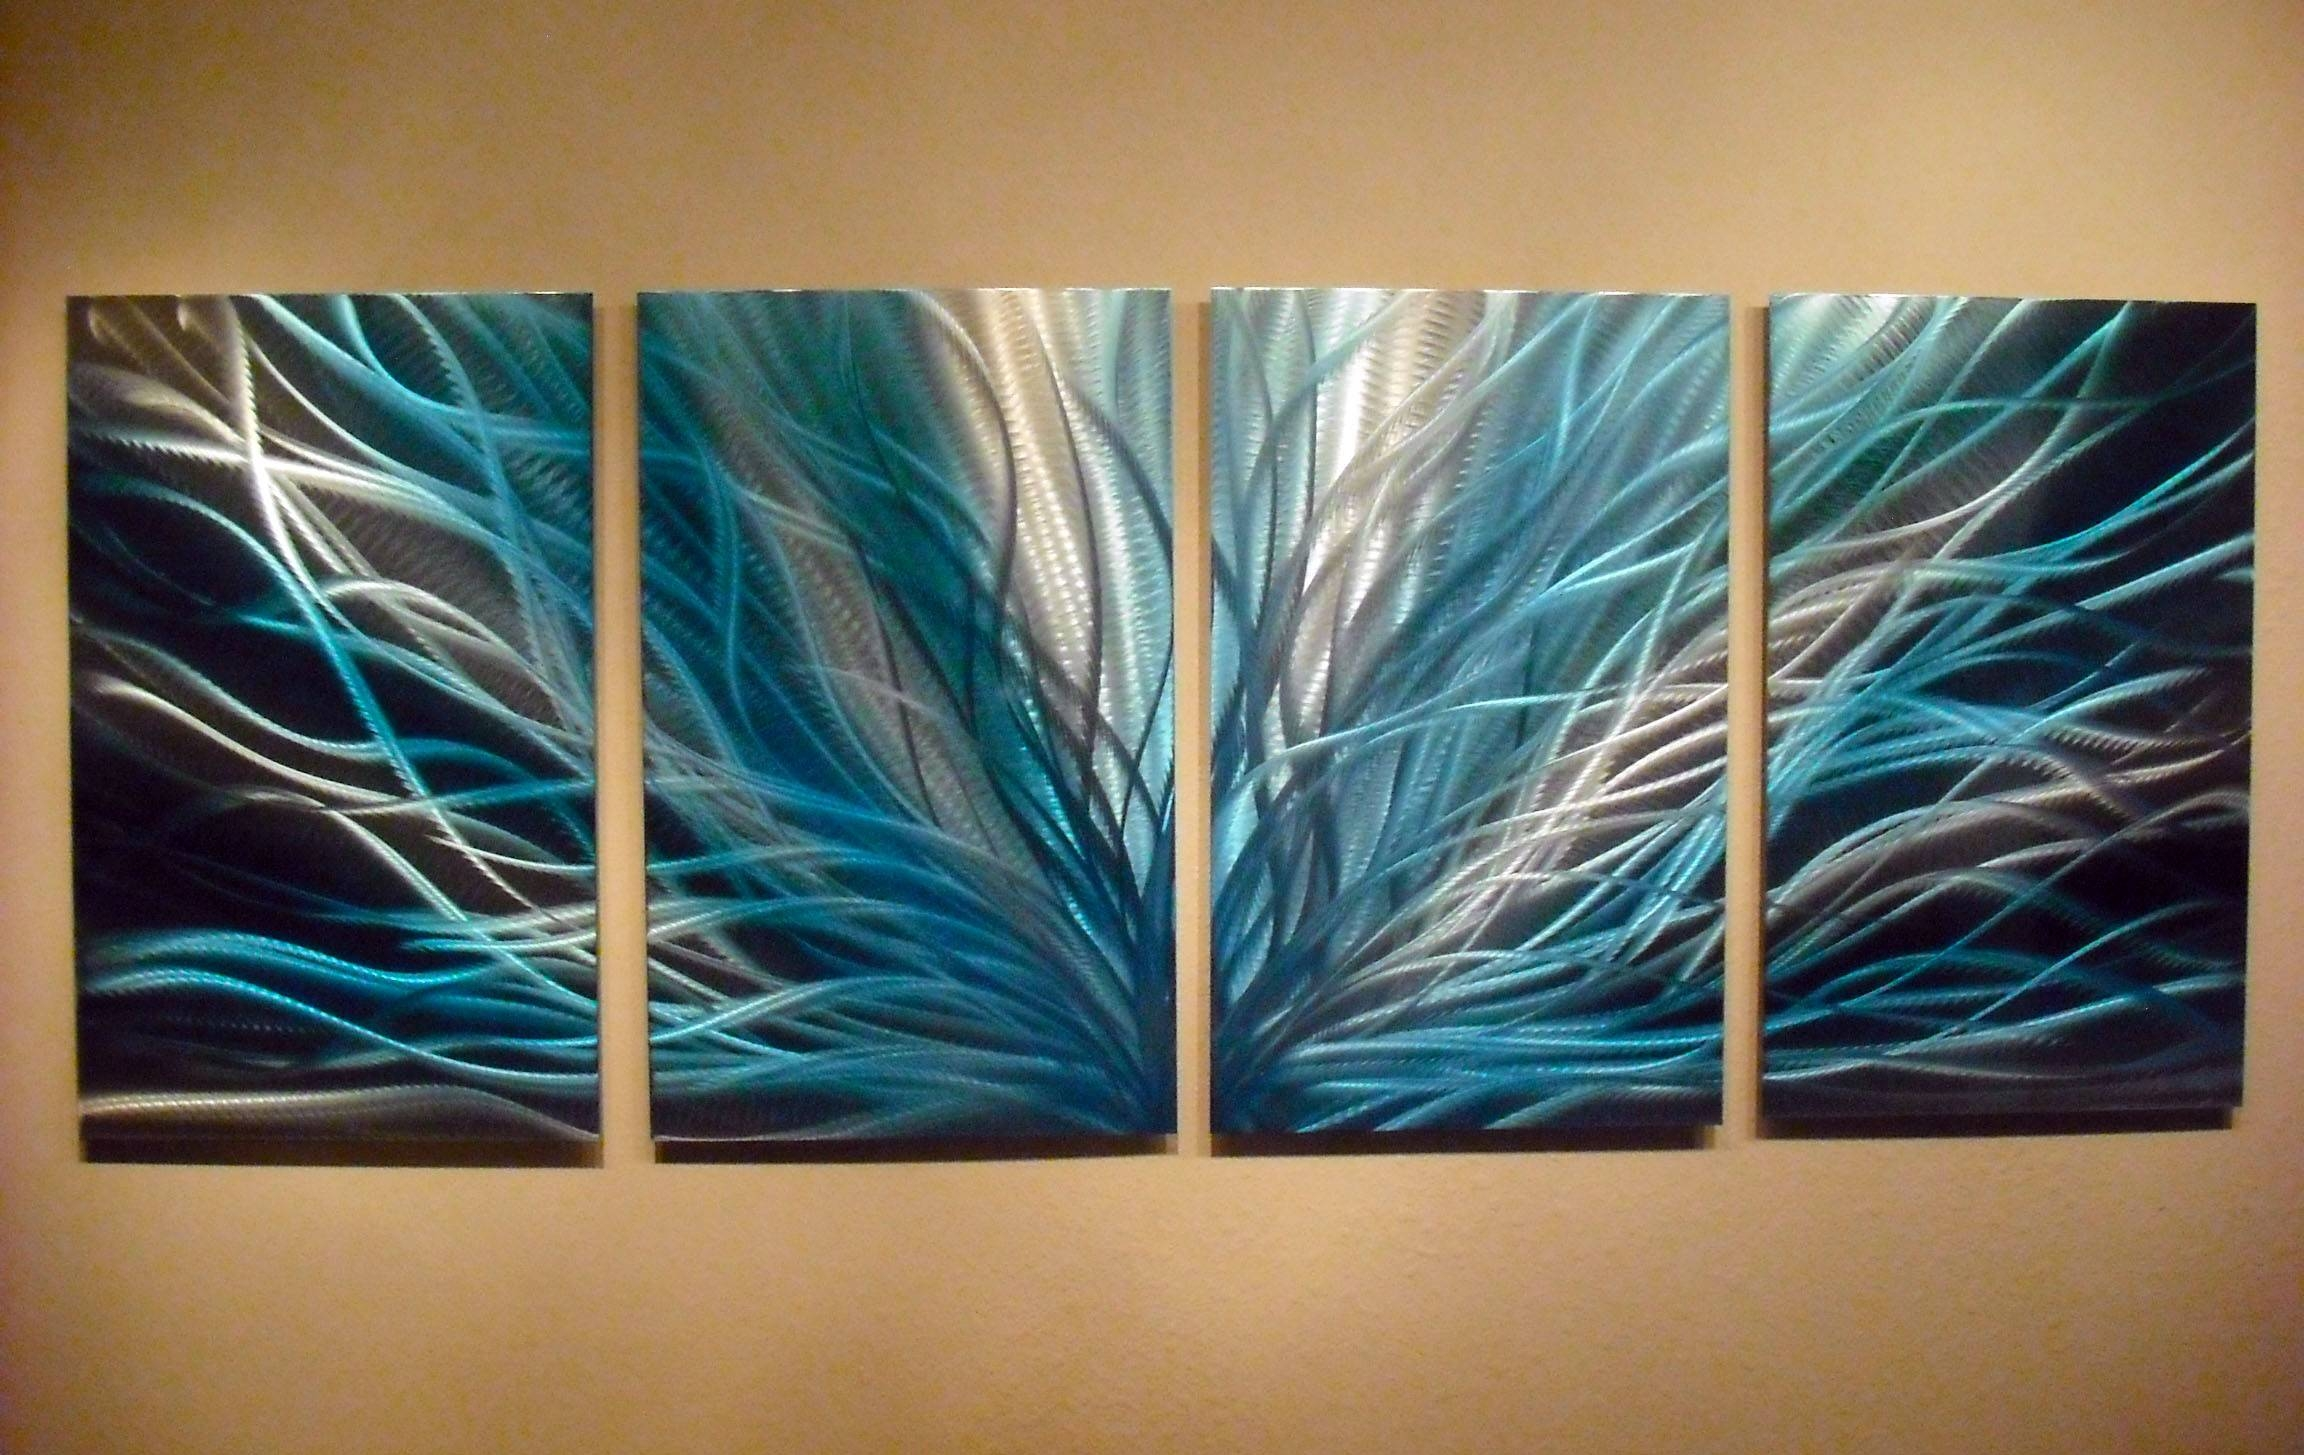 Radiance In Blues  Abstract Metal Wall Art Contemporary Modern With Regard To Latest Modern Abstract Metal Wall Art (Gallery 11 of 20)